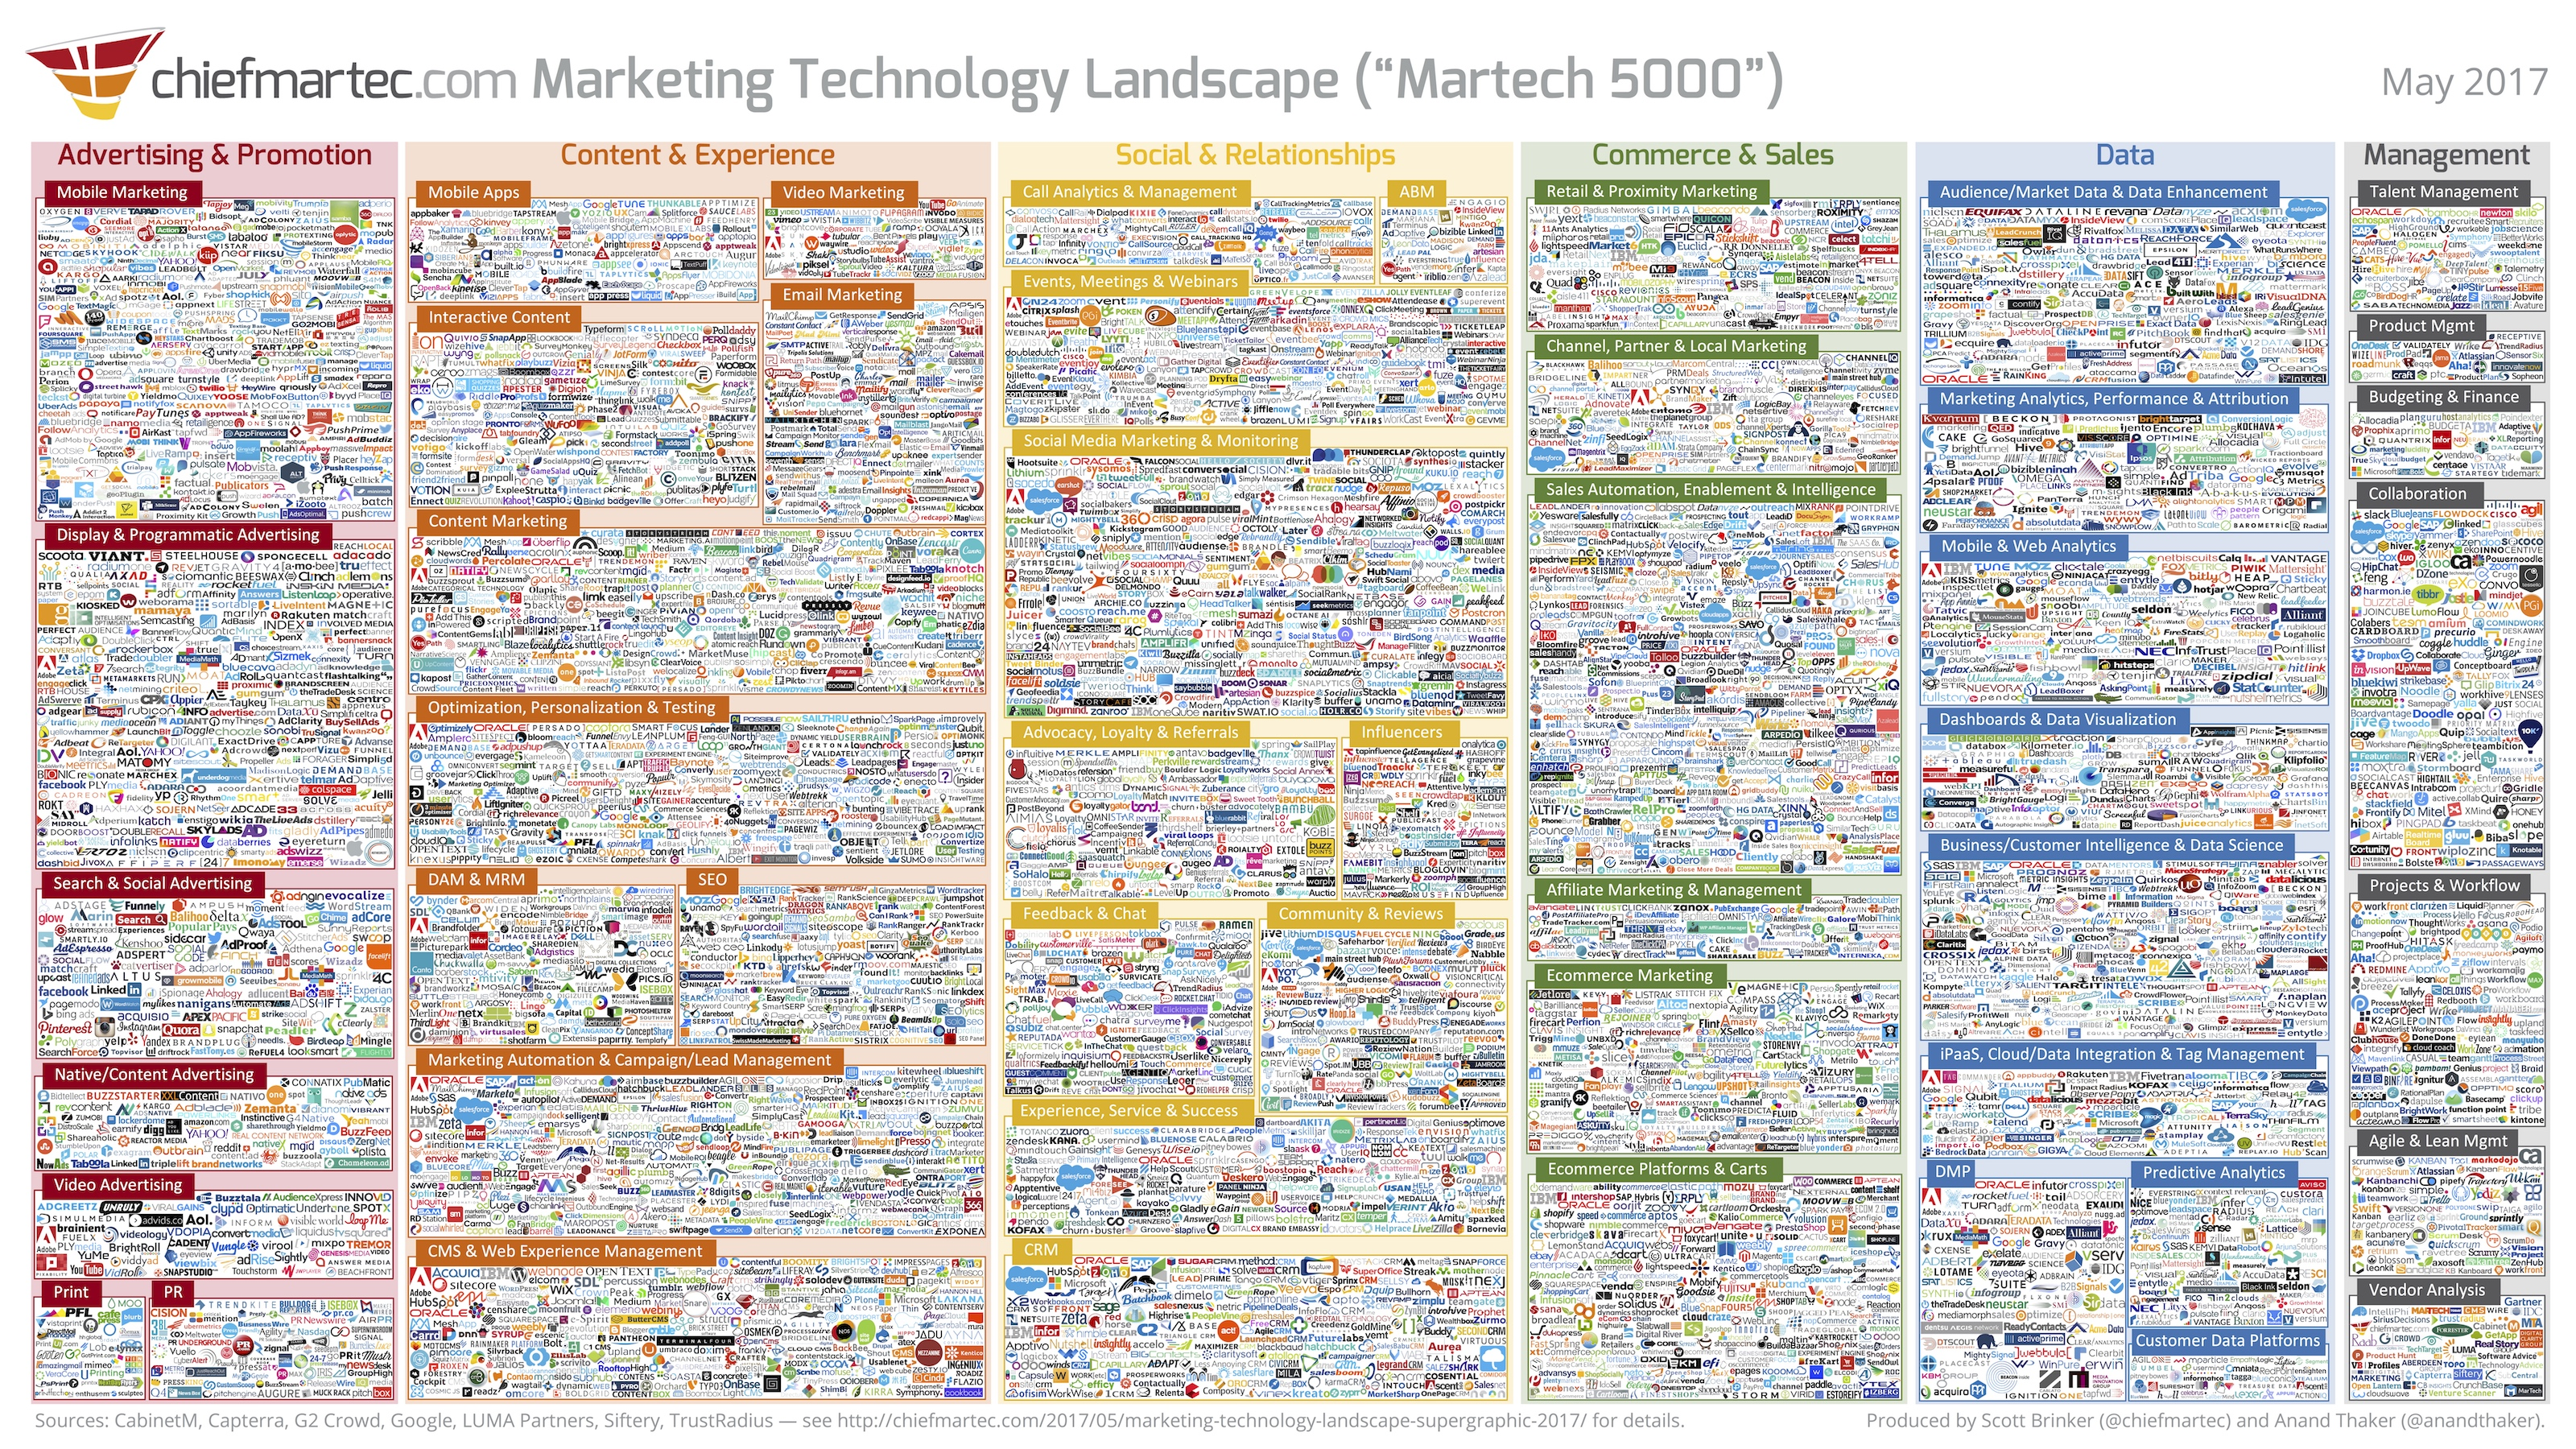 The evolution of marketing technology